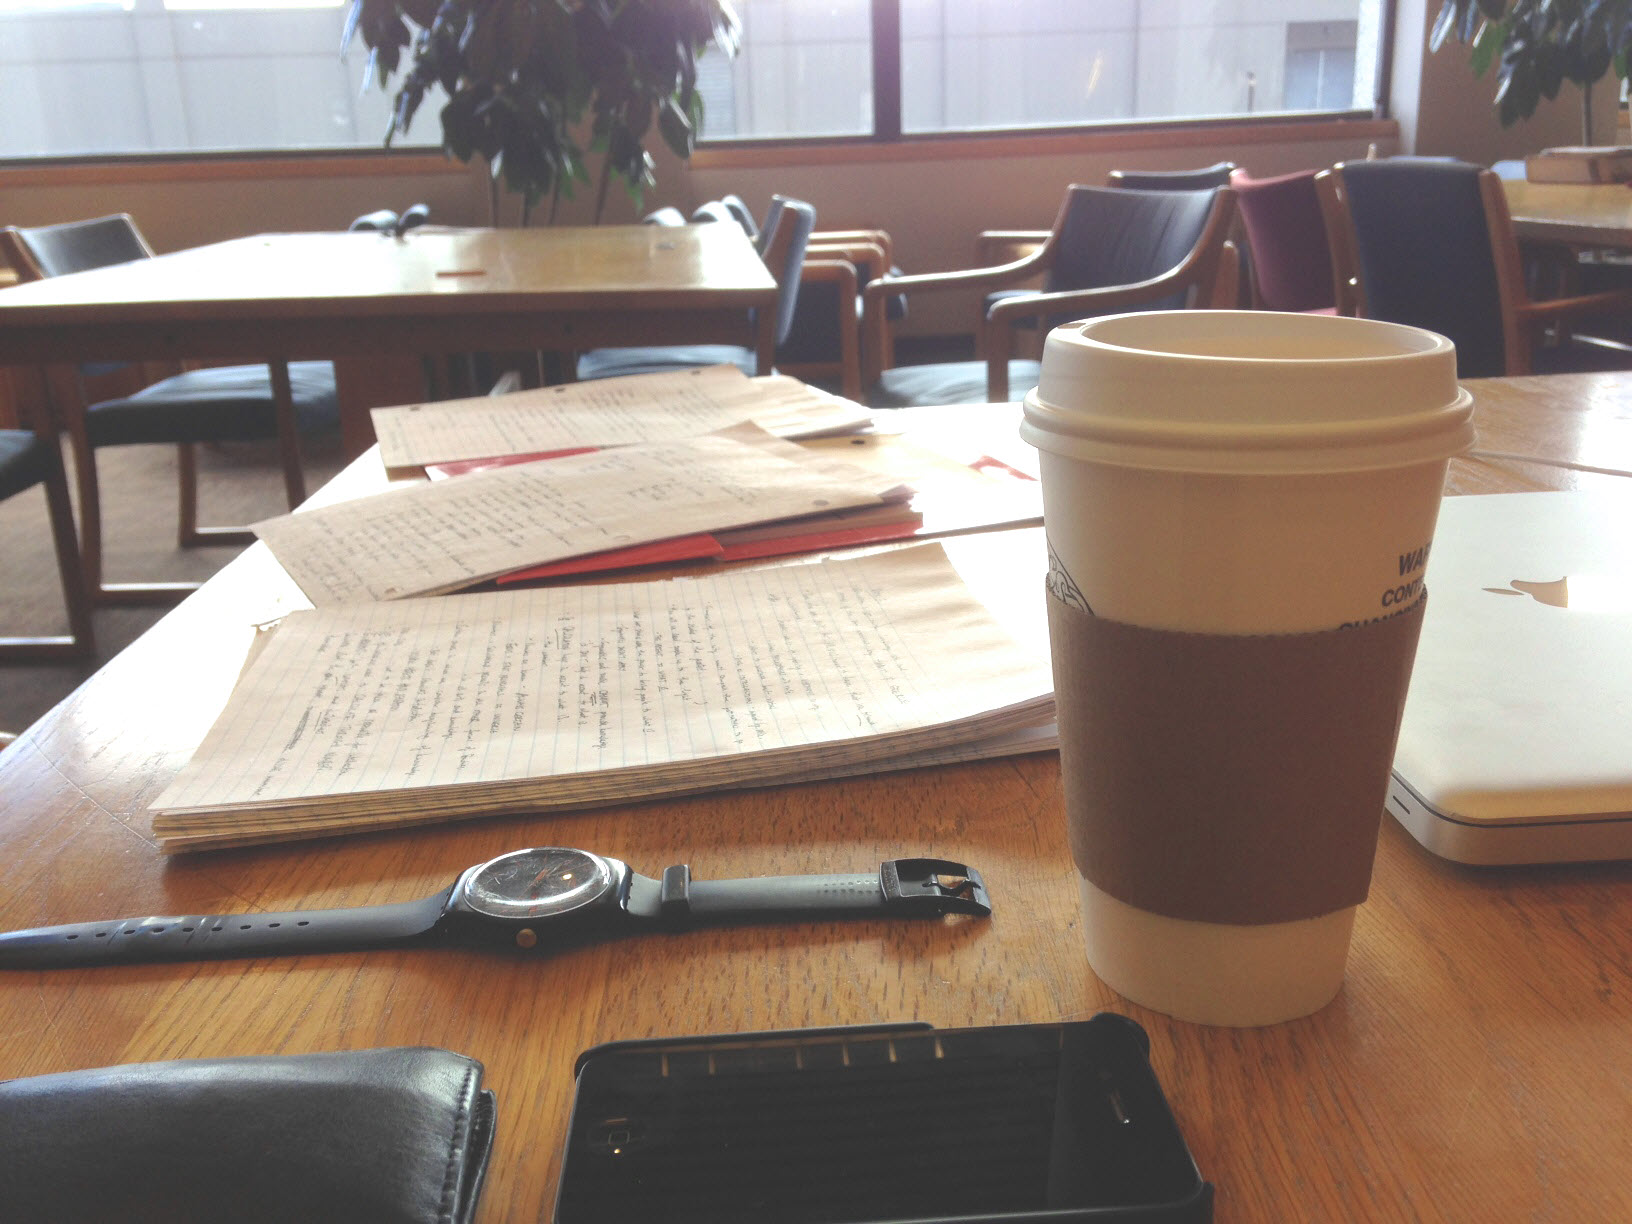 Photo of covered cup of coffee with student's study materials